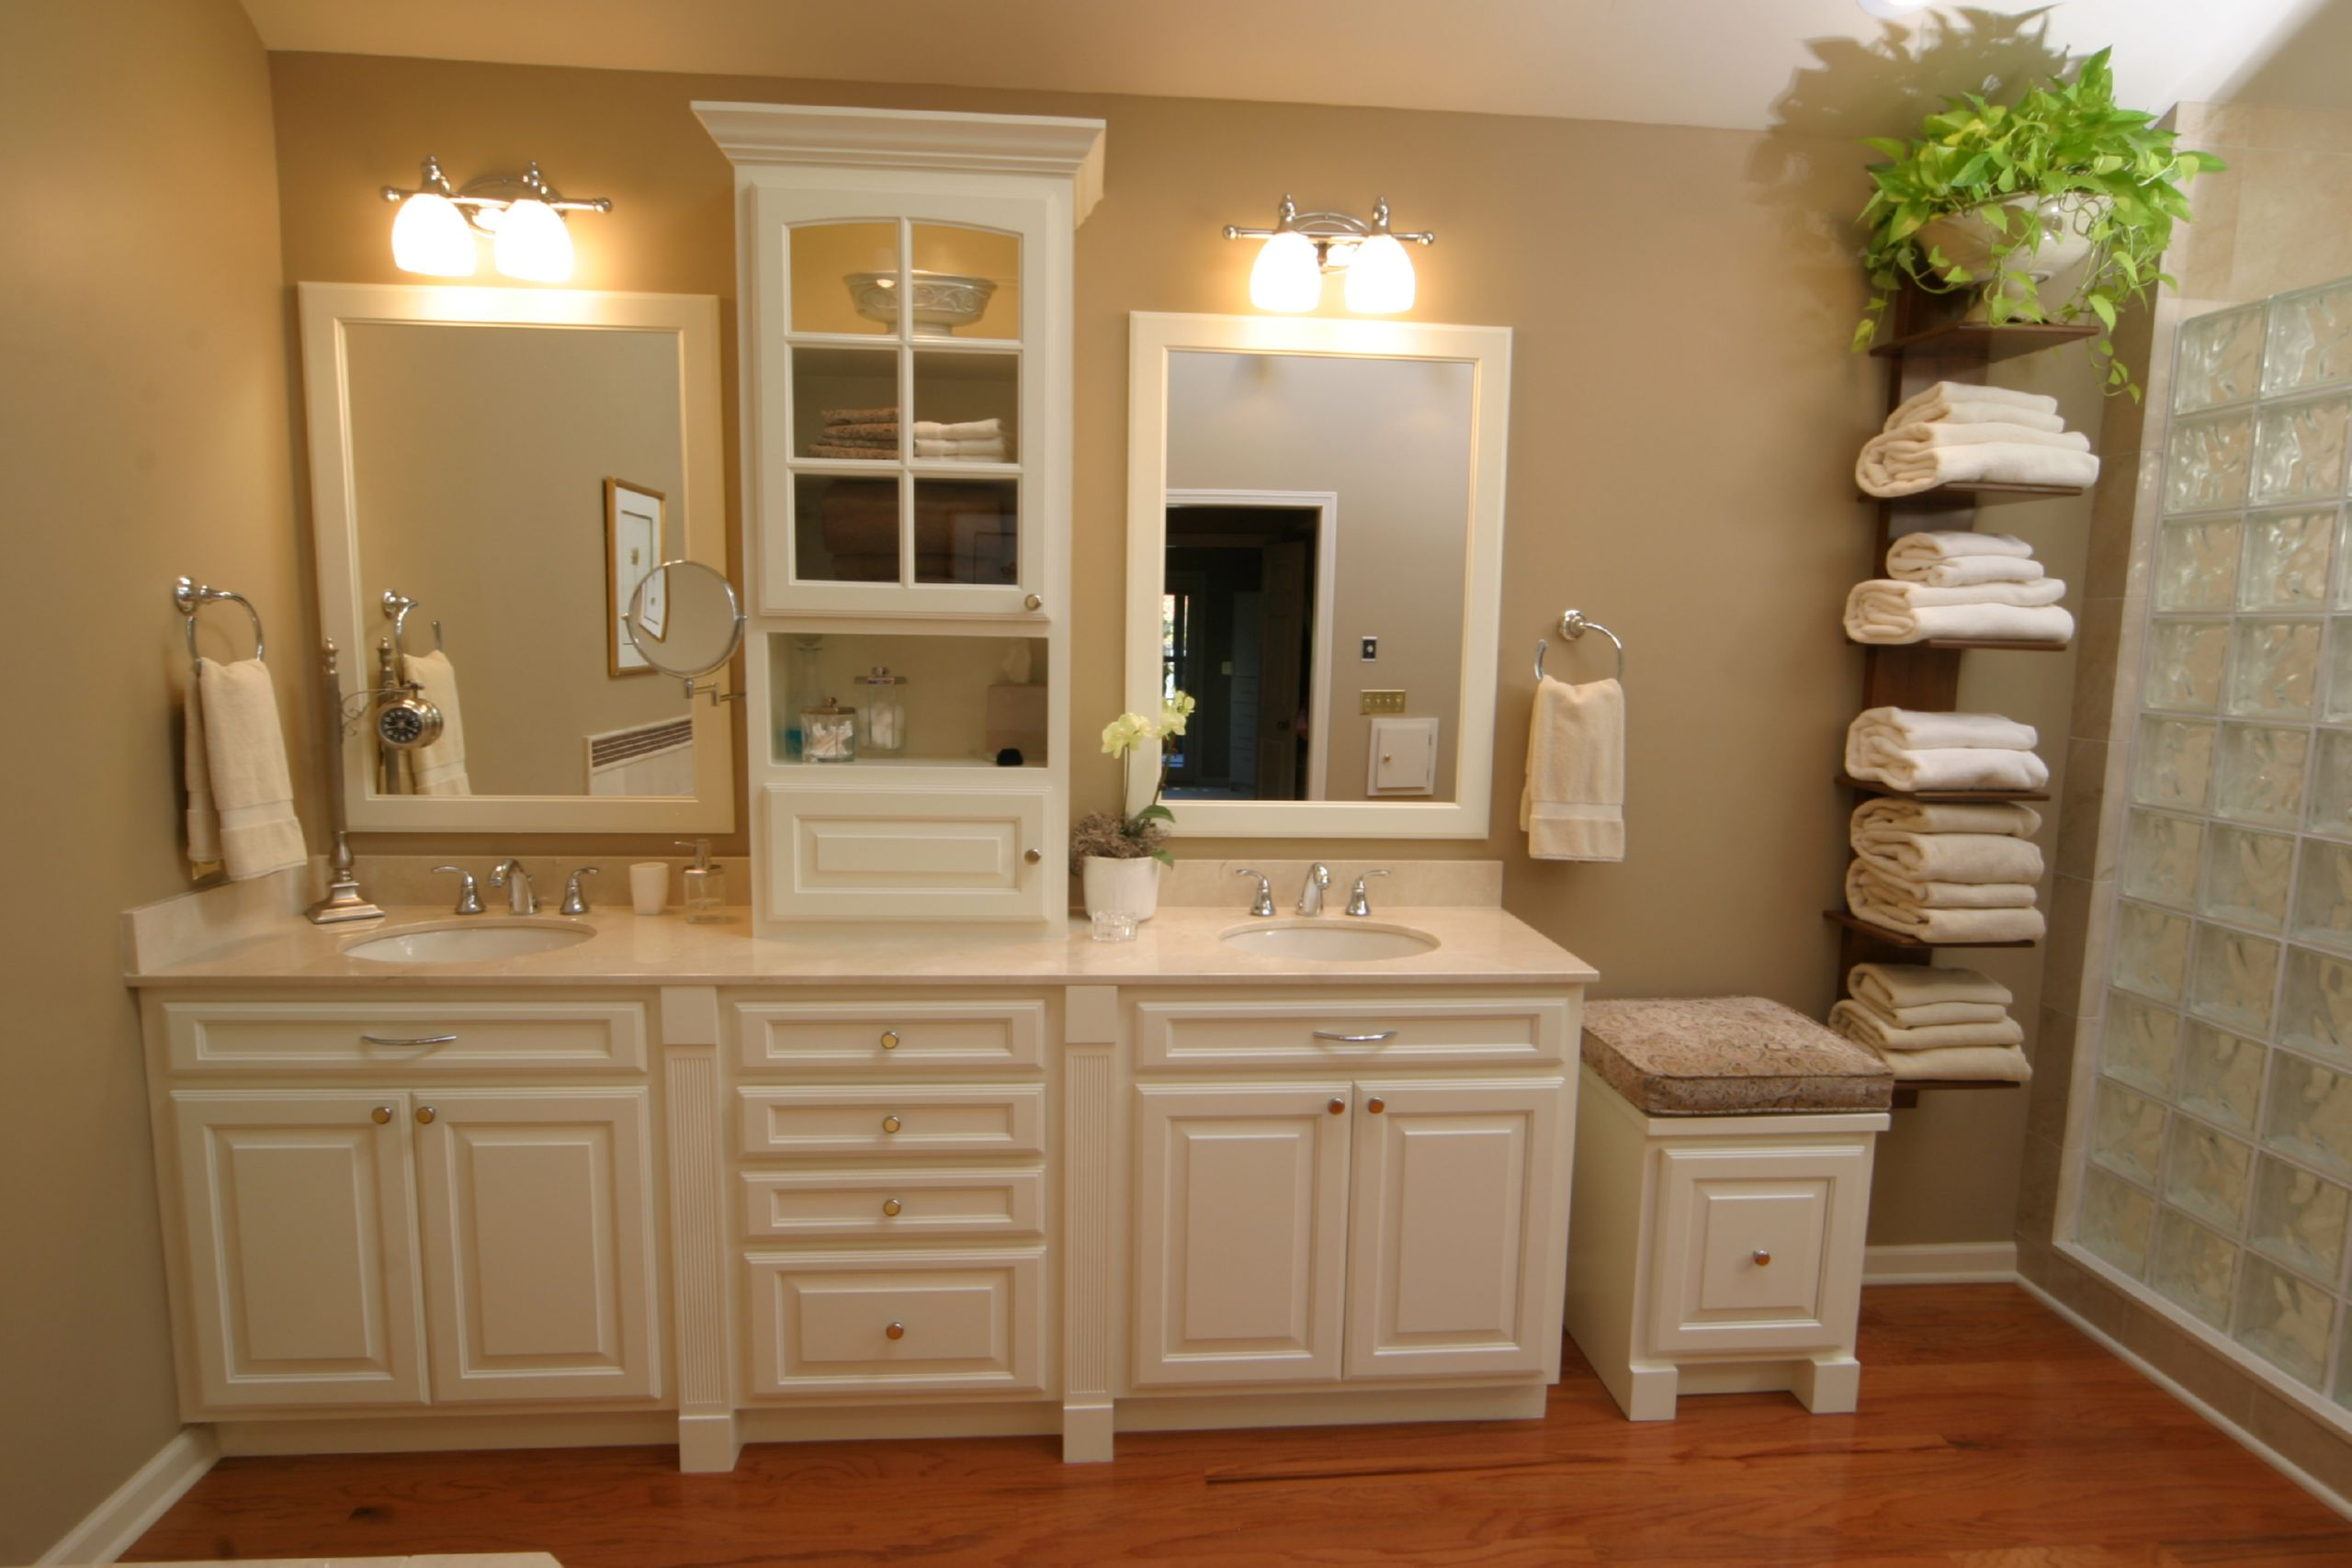 How Much To Remodel Small Bathroom Large And Beautiful Photos Photo To Sel